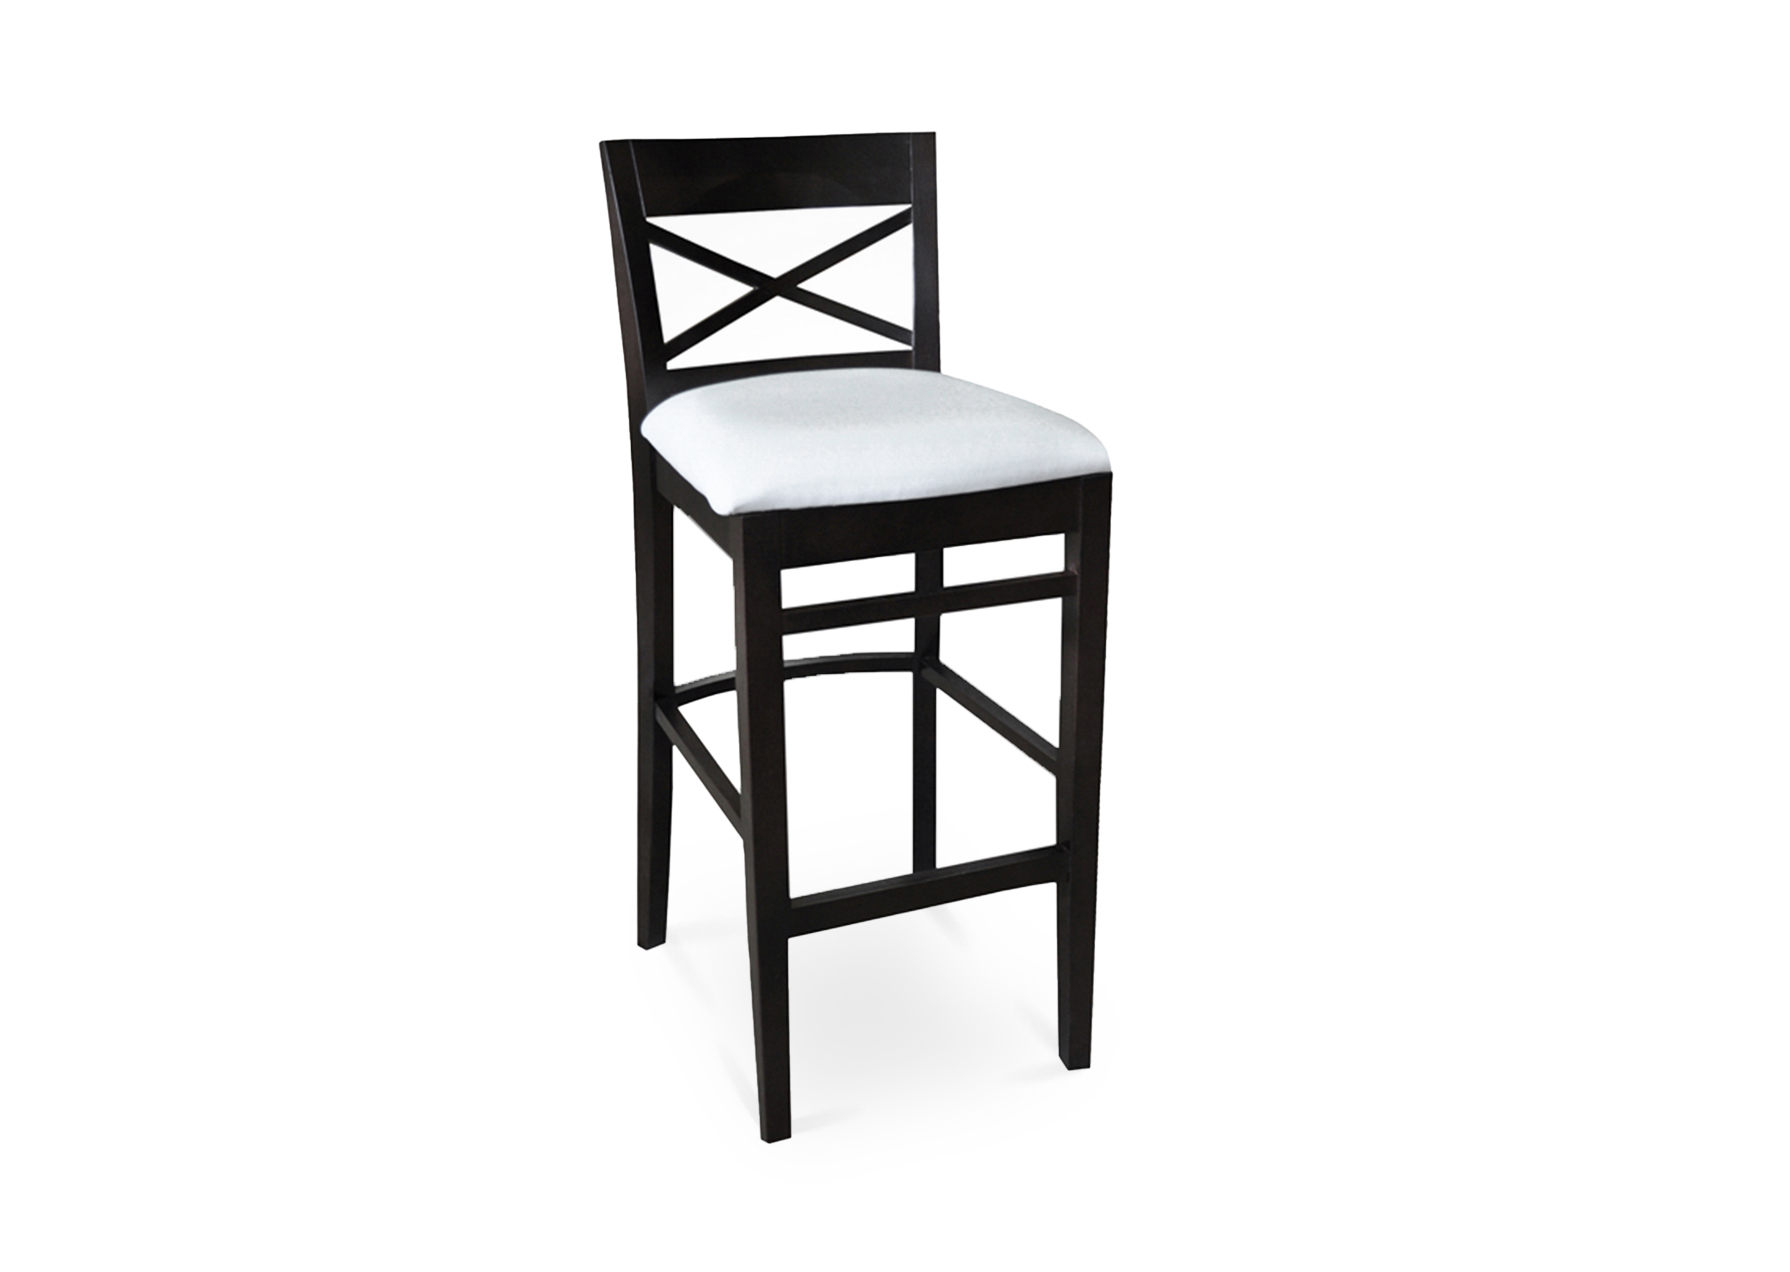 Tremendous Barstools Products Pavar Ibusinesslaw Wood Chair Design Ideas Ibusinesslaworg